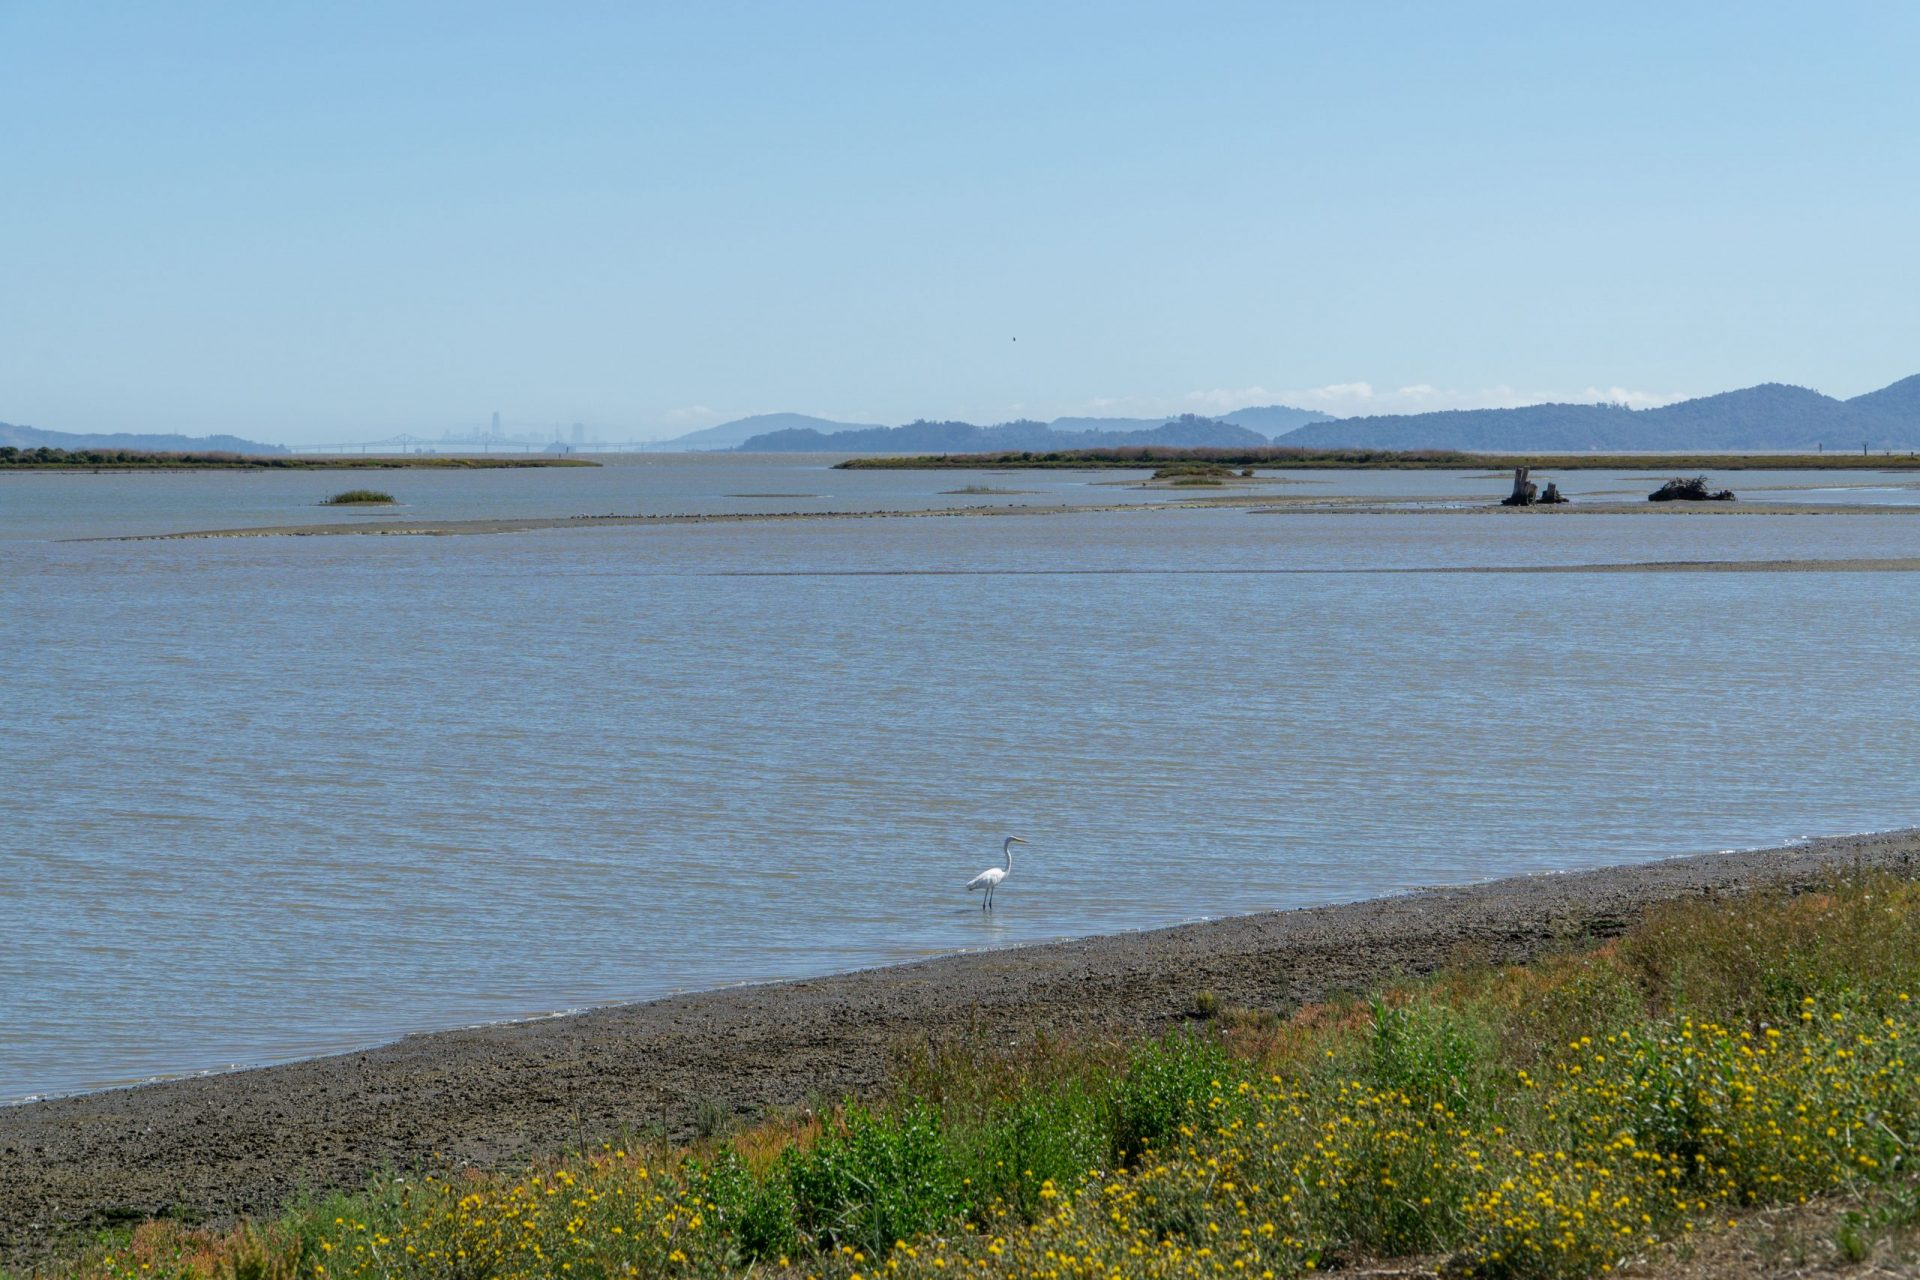 Still bay waters, green marsh in foreground